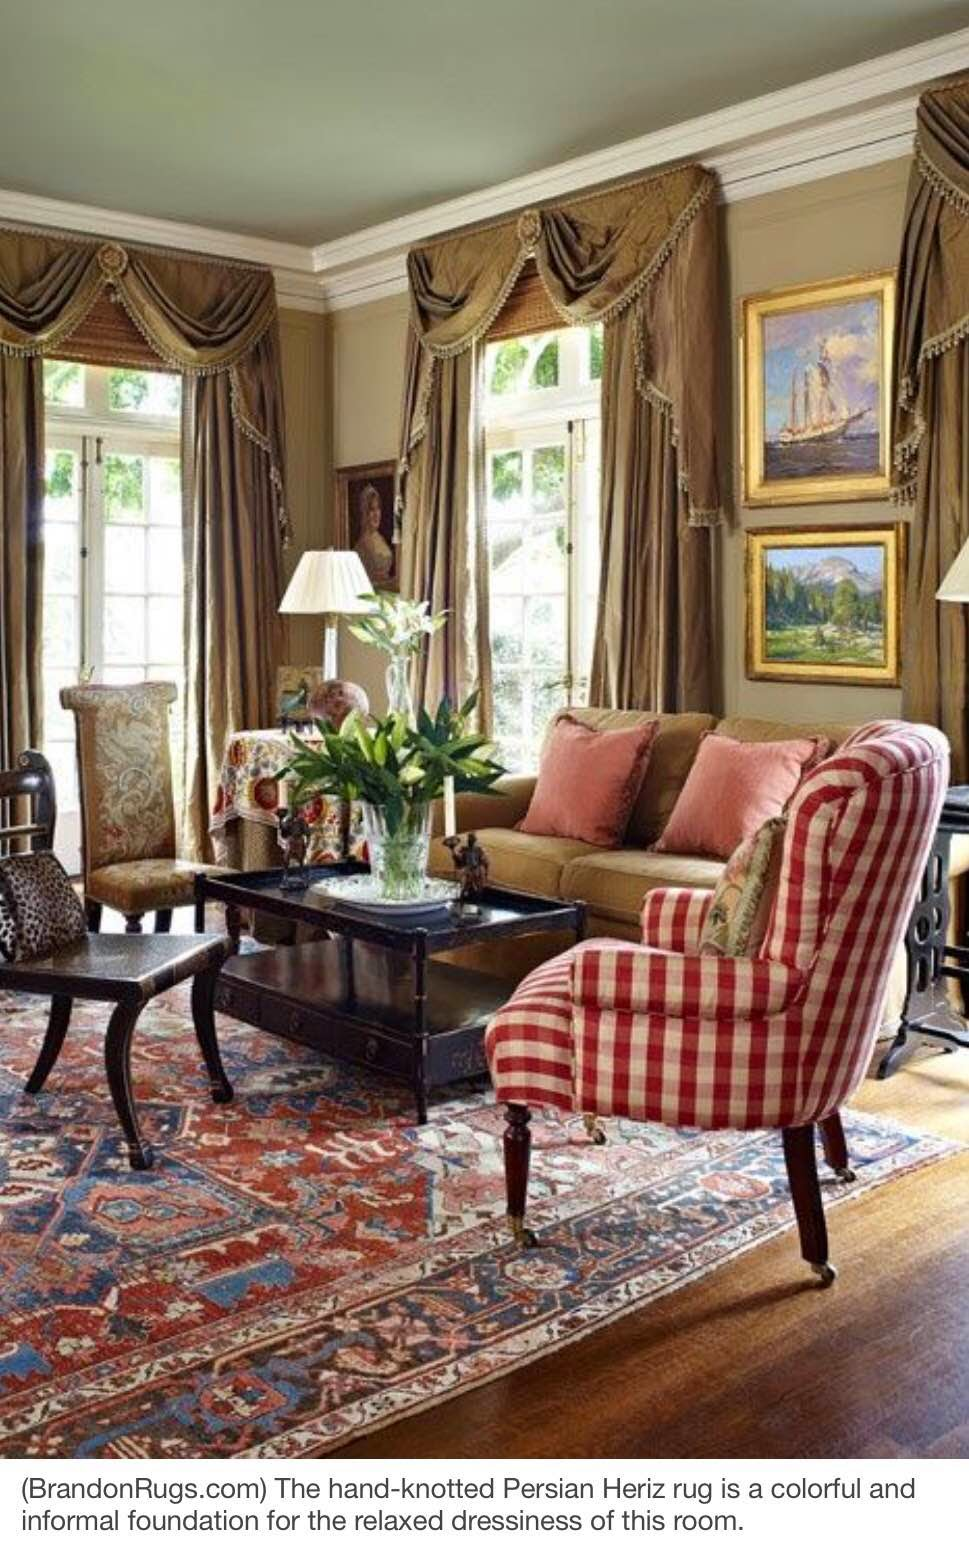 More Home Decor Ideas Using Real Hand Knotted Oriental Rugs Rooms Built Around Persian Heriz Design PHOTOS